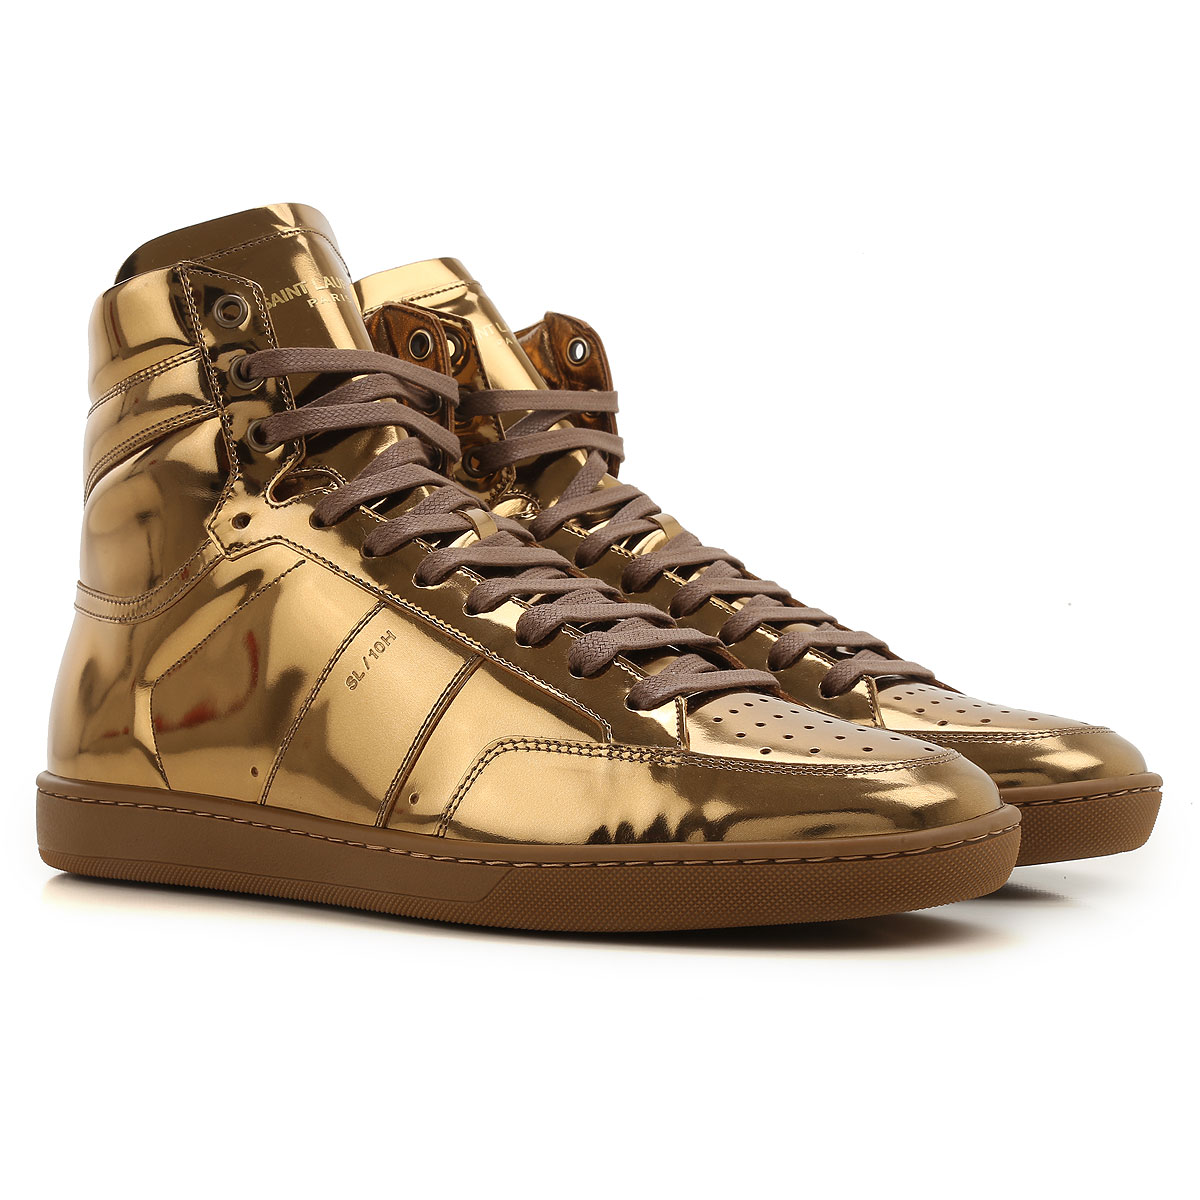 32334842a48 Mens Shoes Yves Saint Laurent, Style code: 418026-aal00-8237